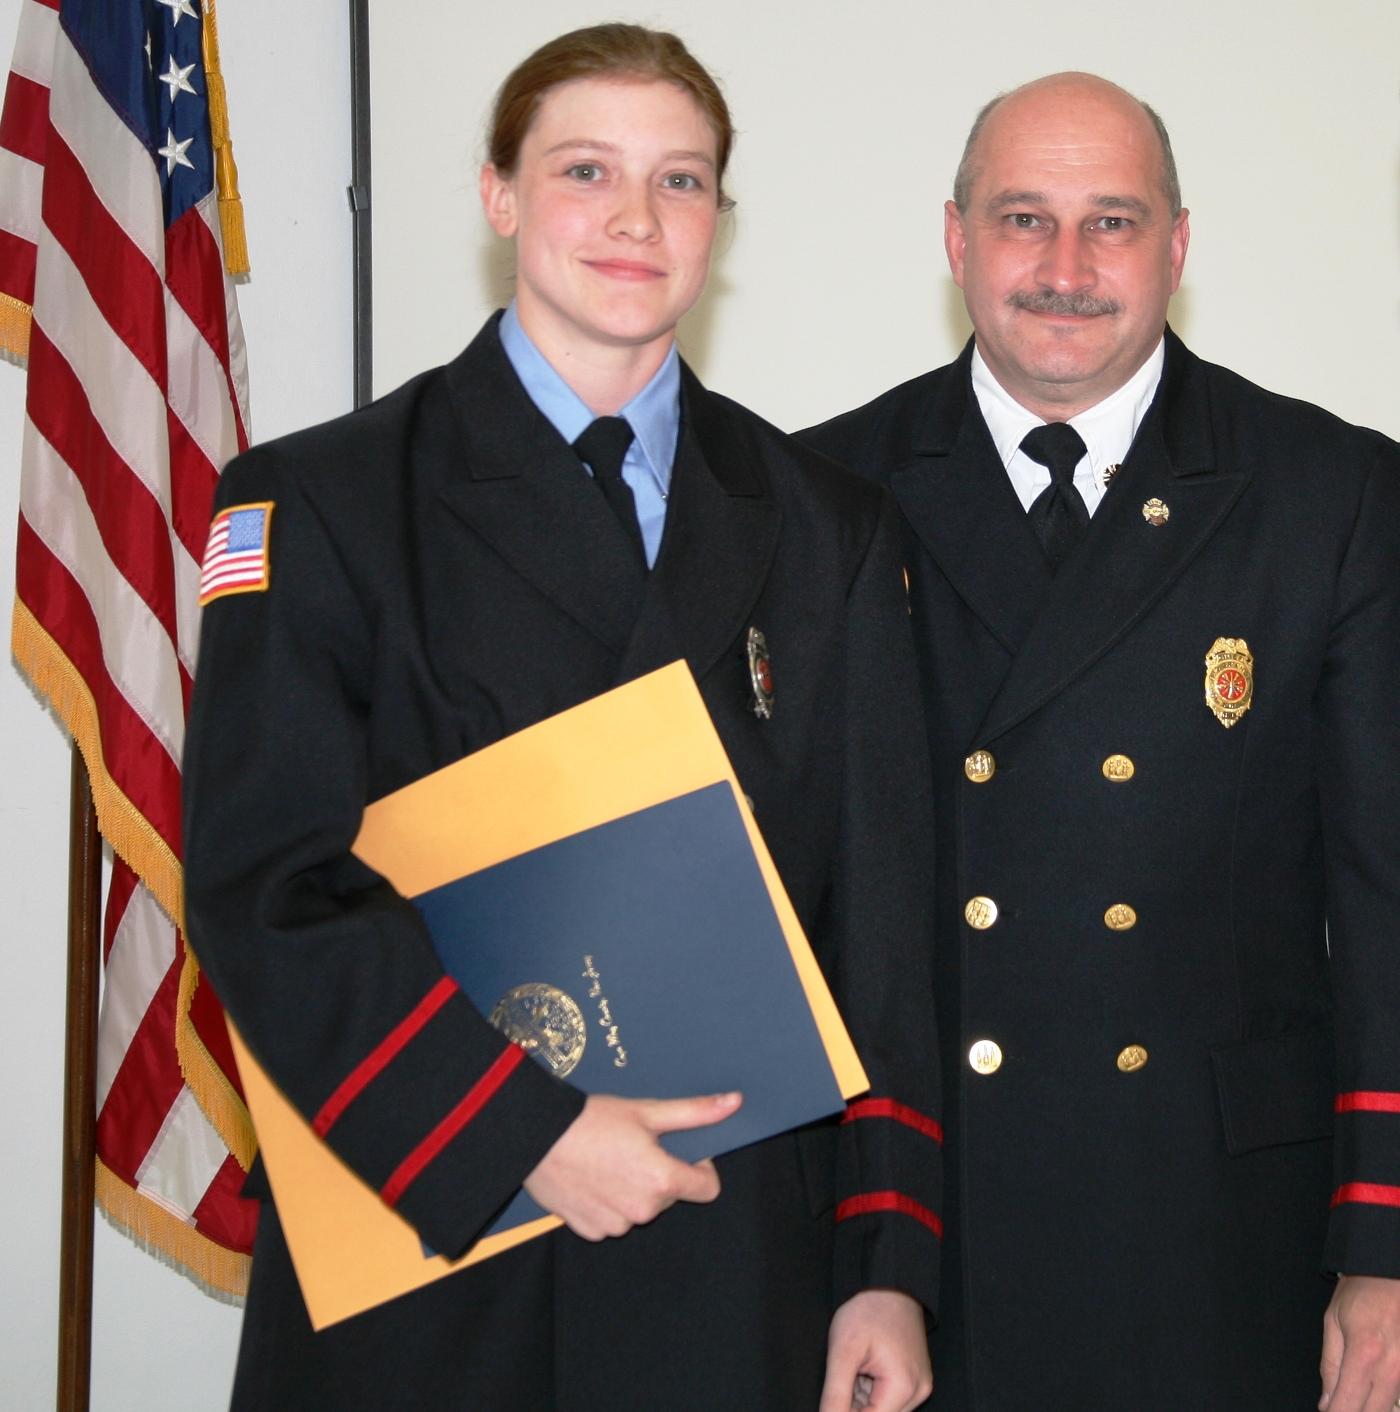 Fire Fighter II Kristen Kolondra, Chief Richard Sweeten